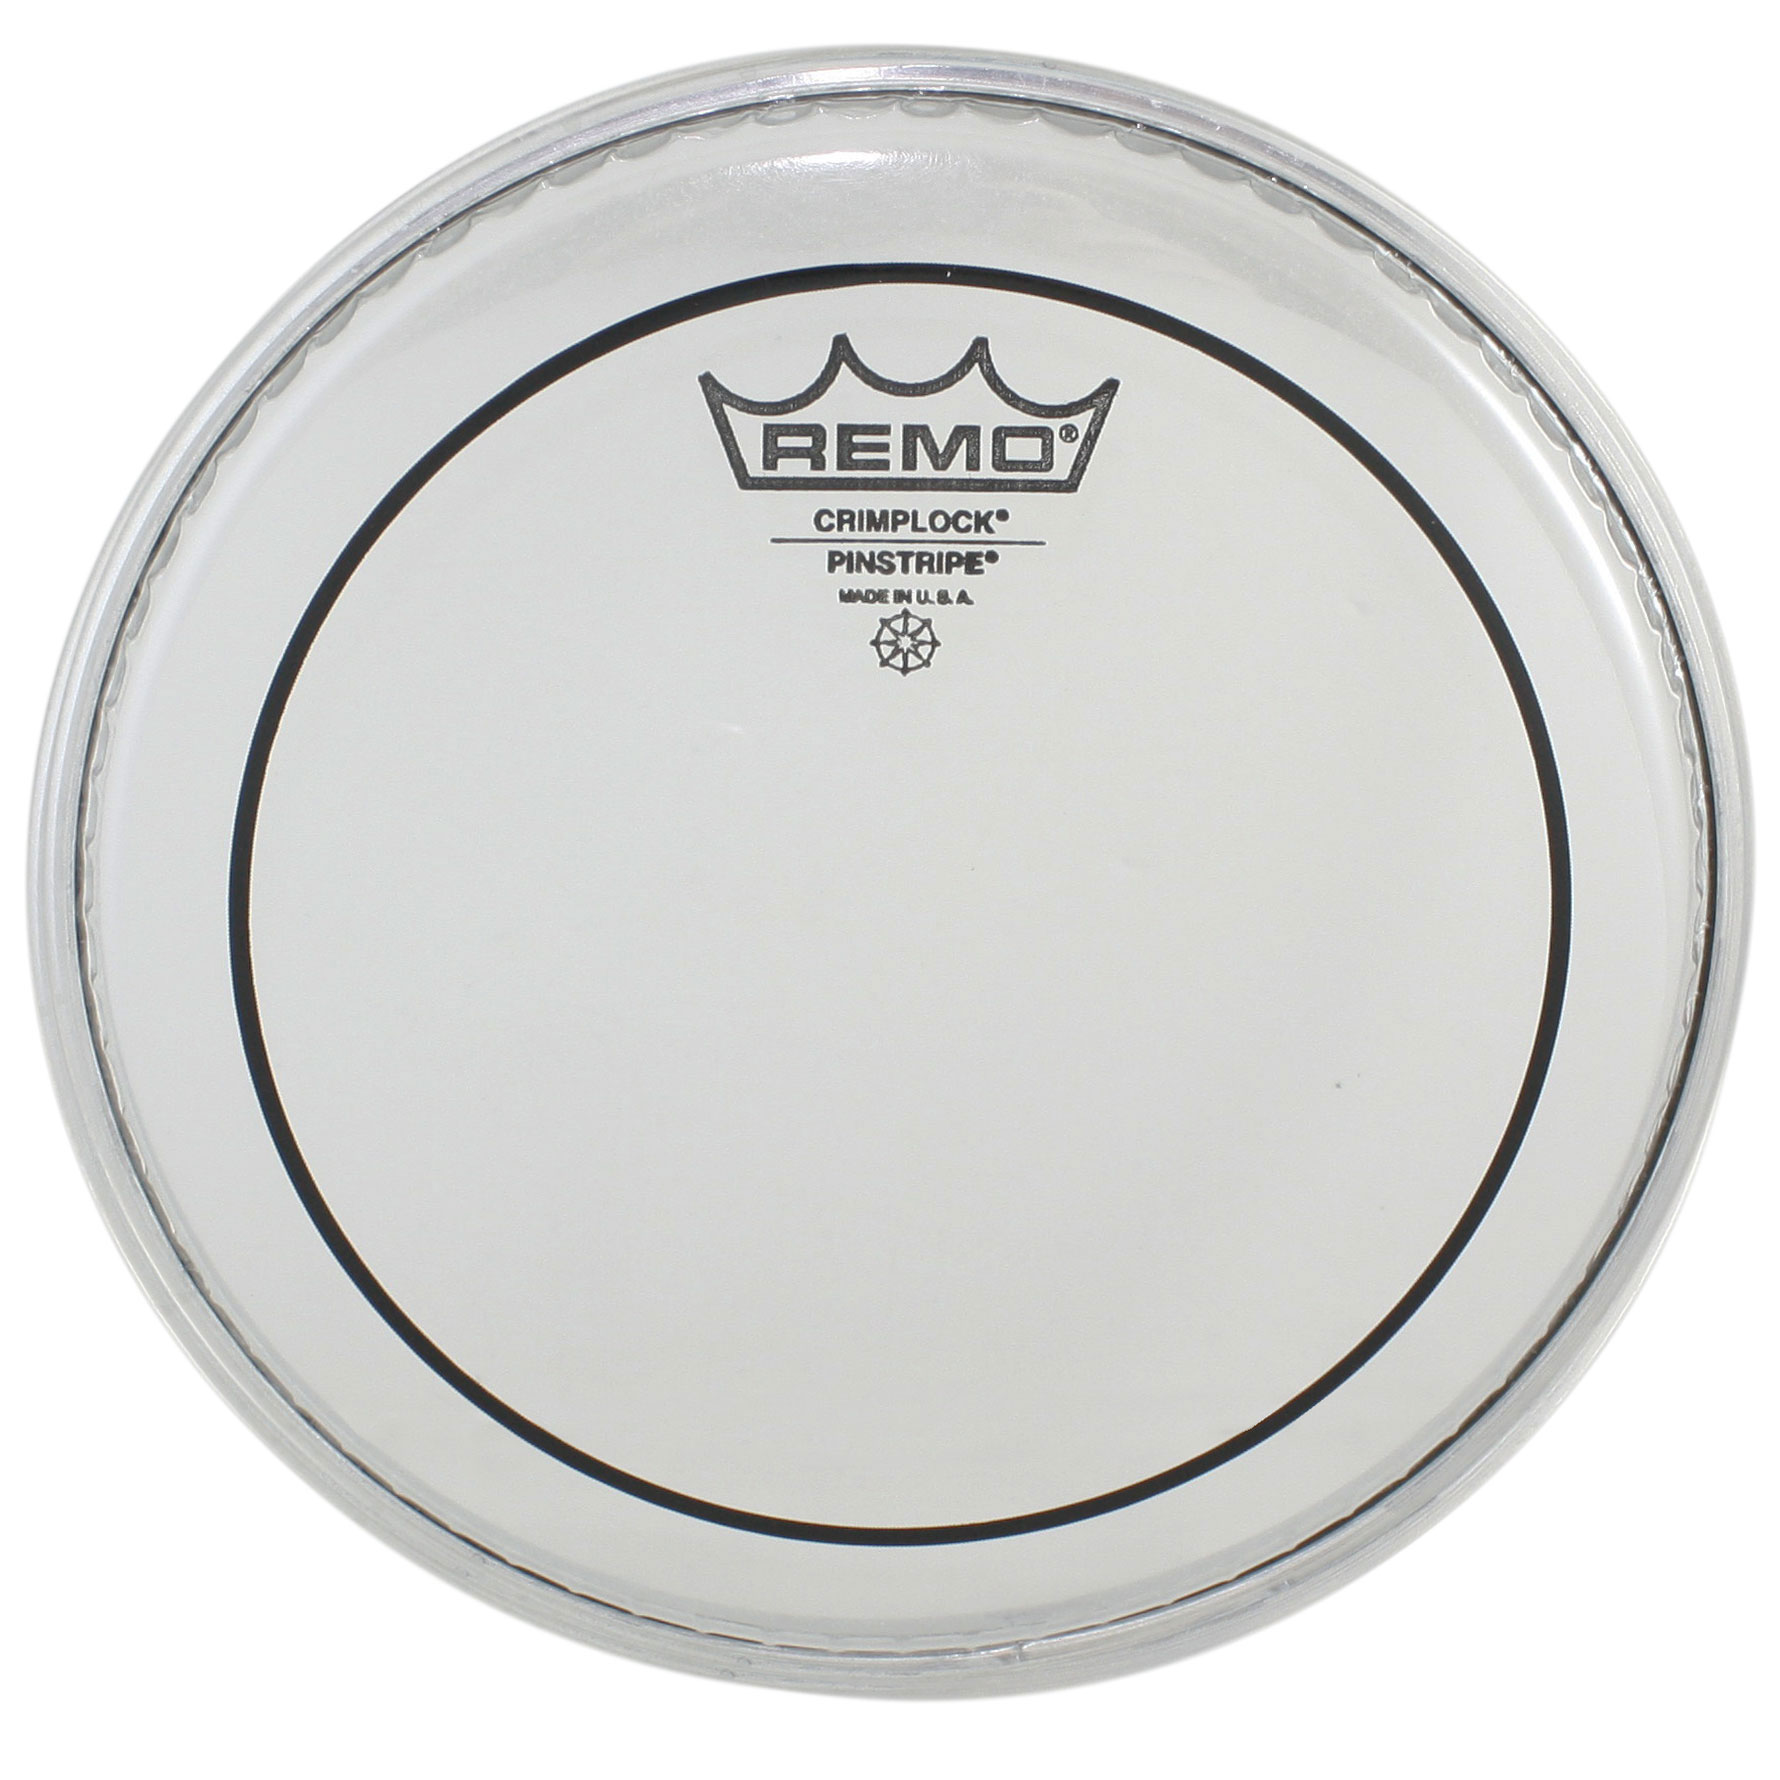 "Remo 10"" Pinstripe Clear Crimplock Marching Tenor Drum Head"